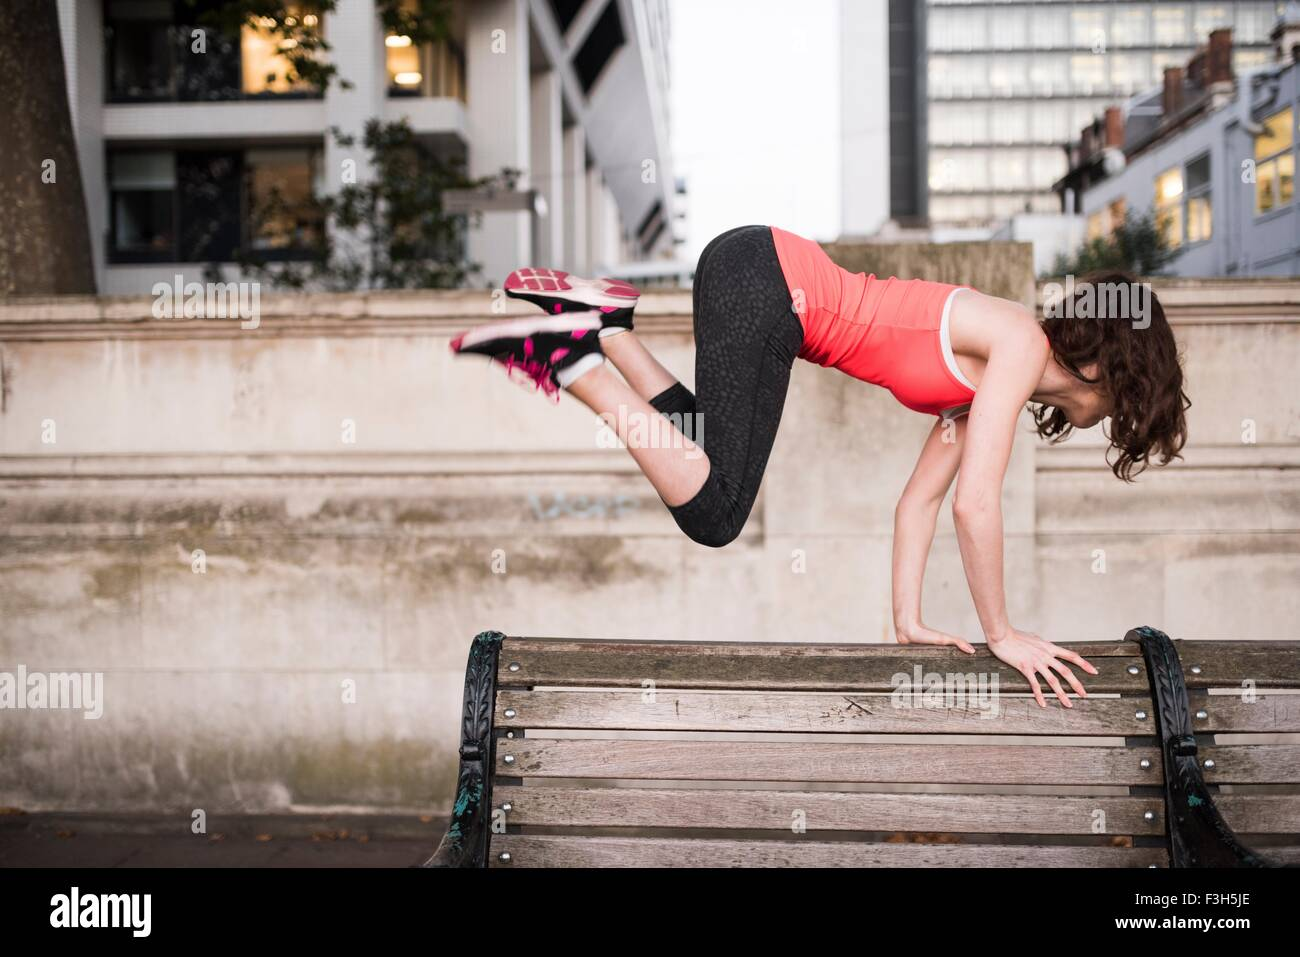 Young woman leaping over park bench in city - Stock Image